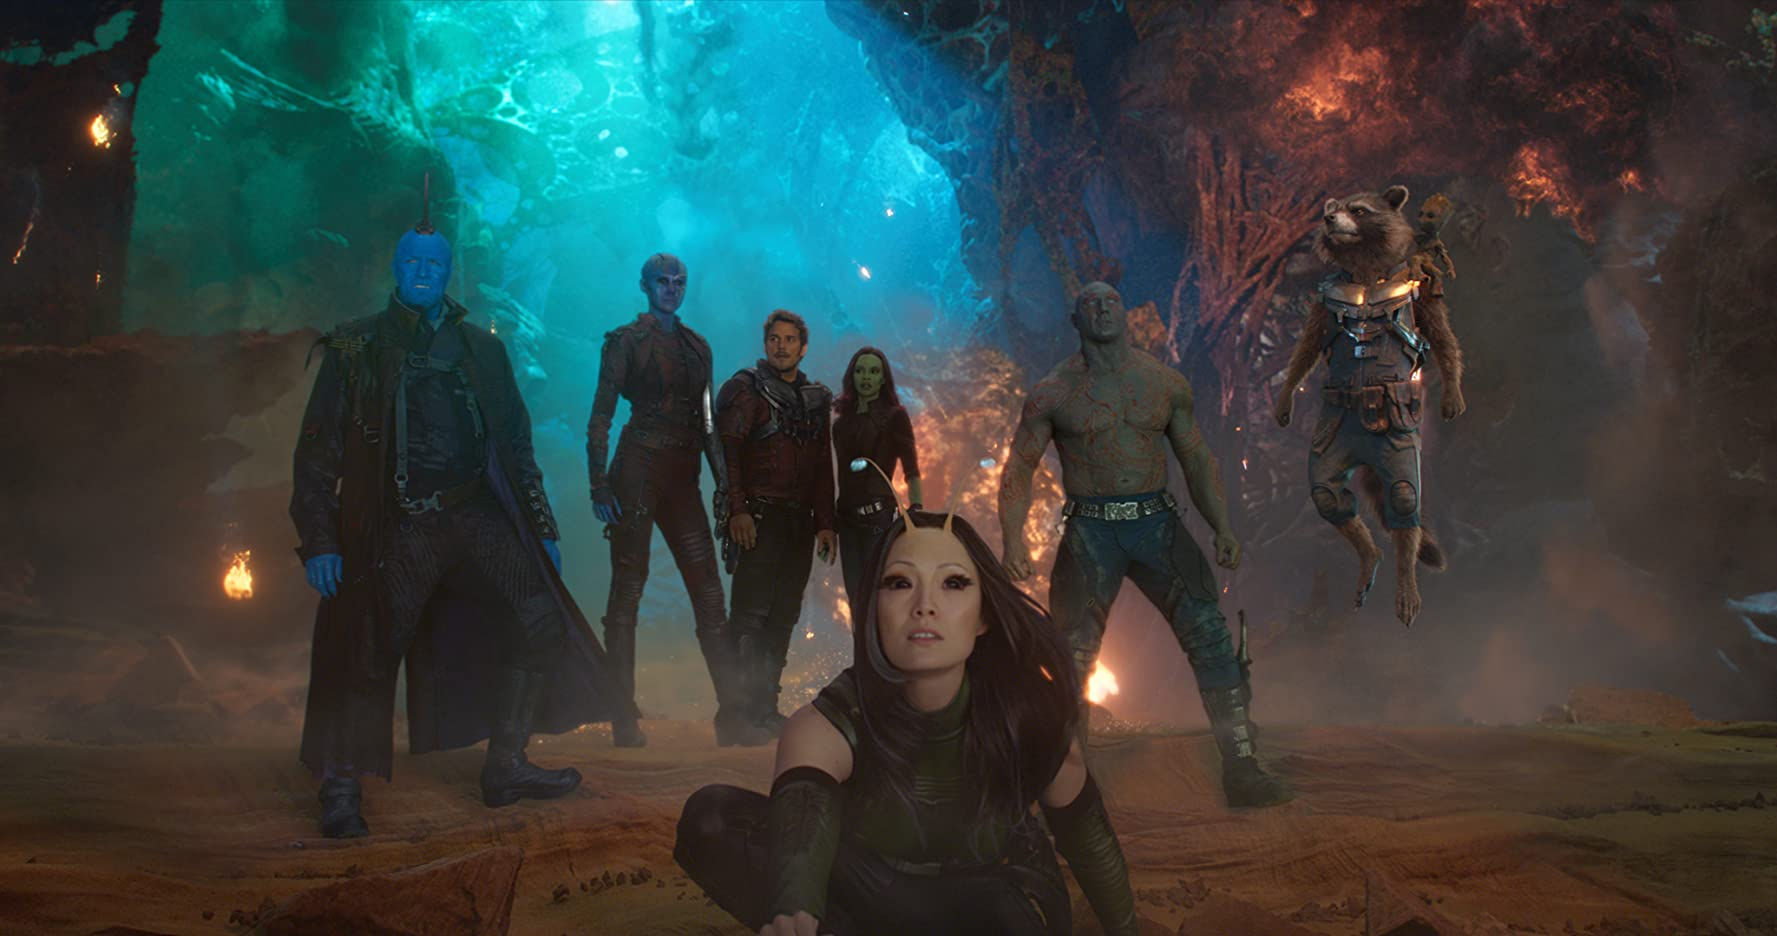 Vin Diesel, Bradley Cooper, Chris Pratt, Michael Rooker, Zoe Saldana, Dave Bautista, Karen Gillan, and Pom Klementieff in Guardians of the Galaxy Vol. 2 (2017)